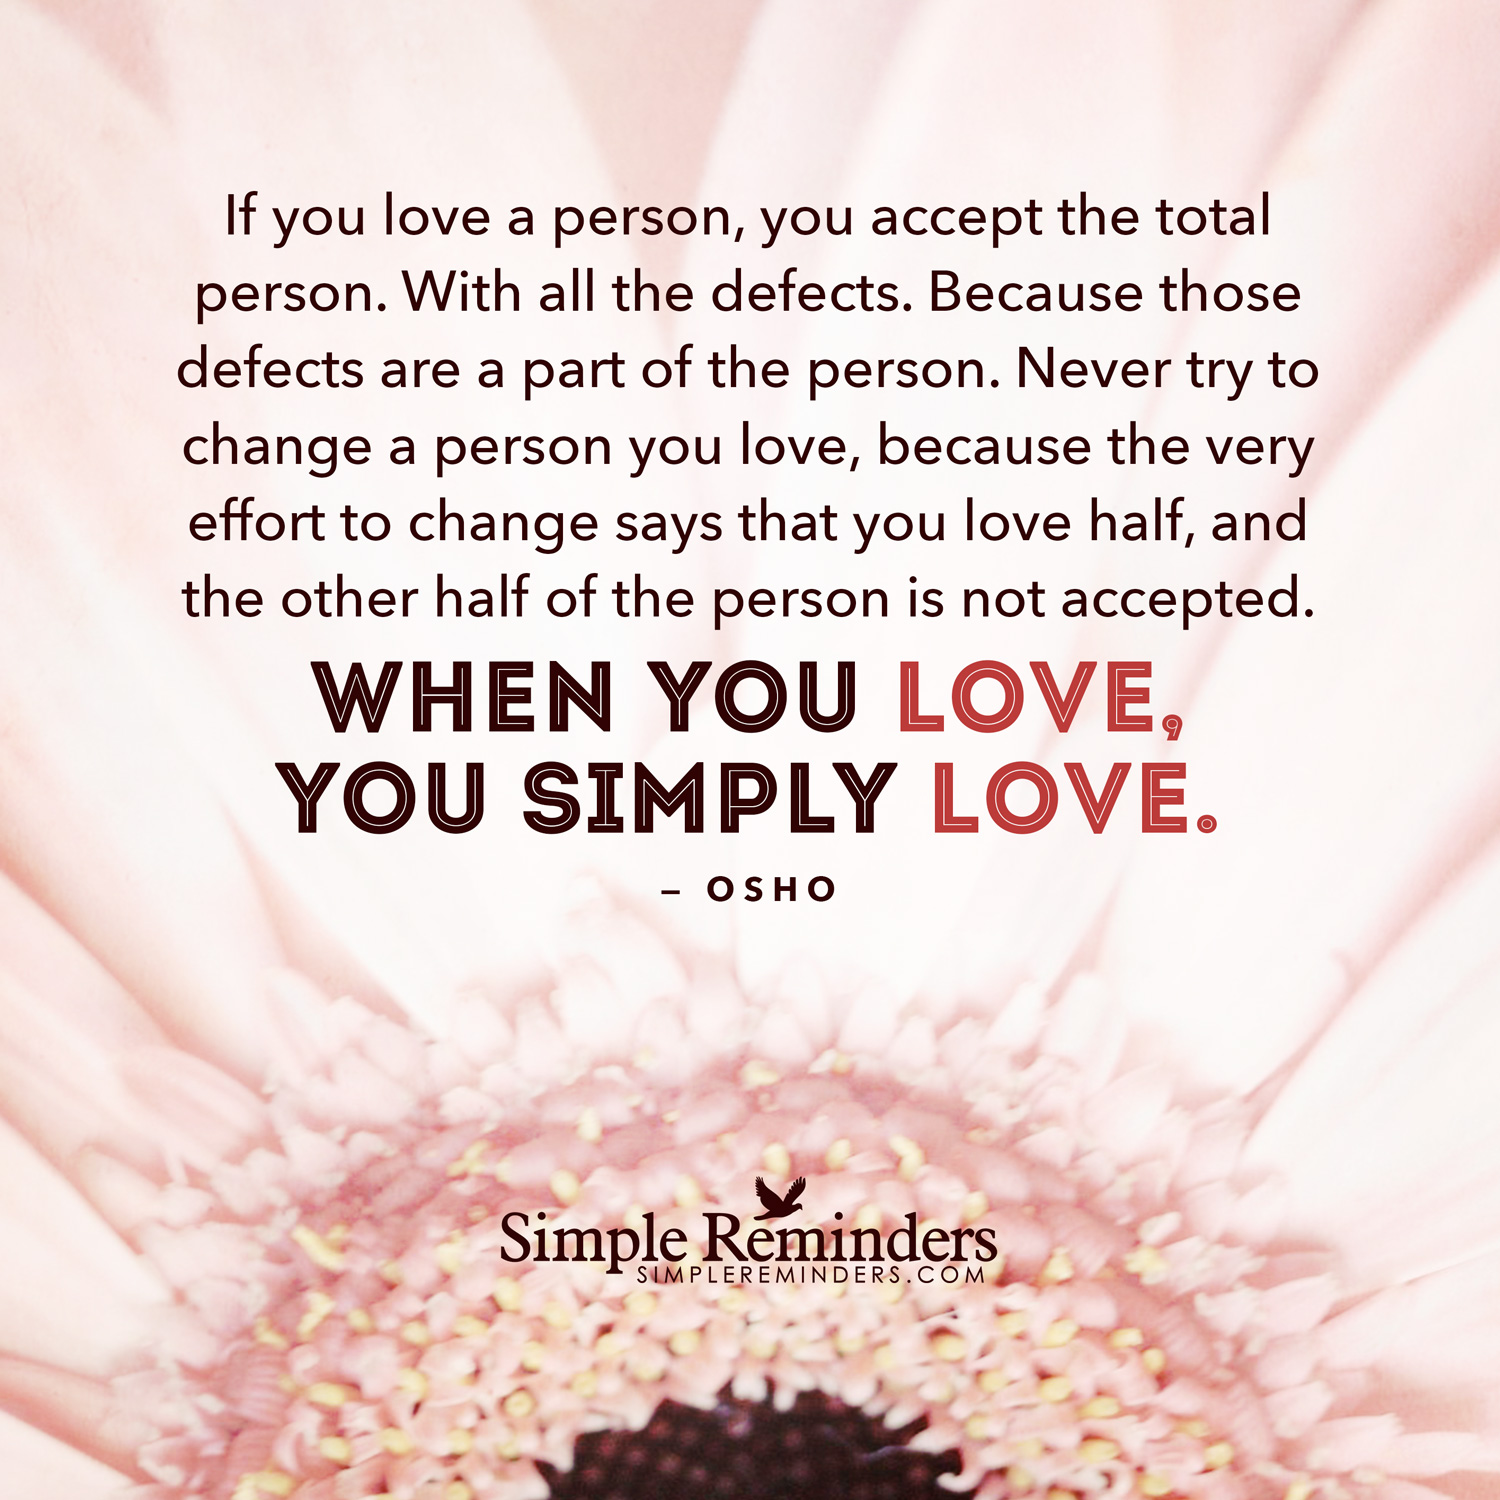 Quotes About Love Relationships: Osho Quotes On Relationship. QuotesGram